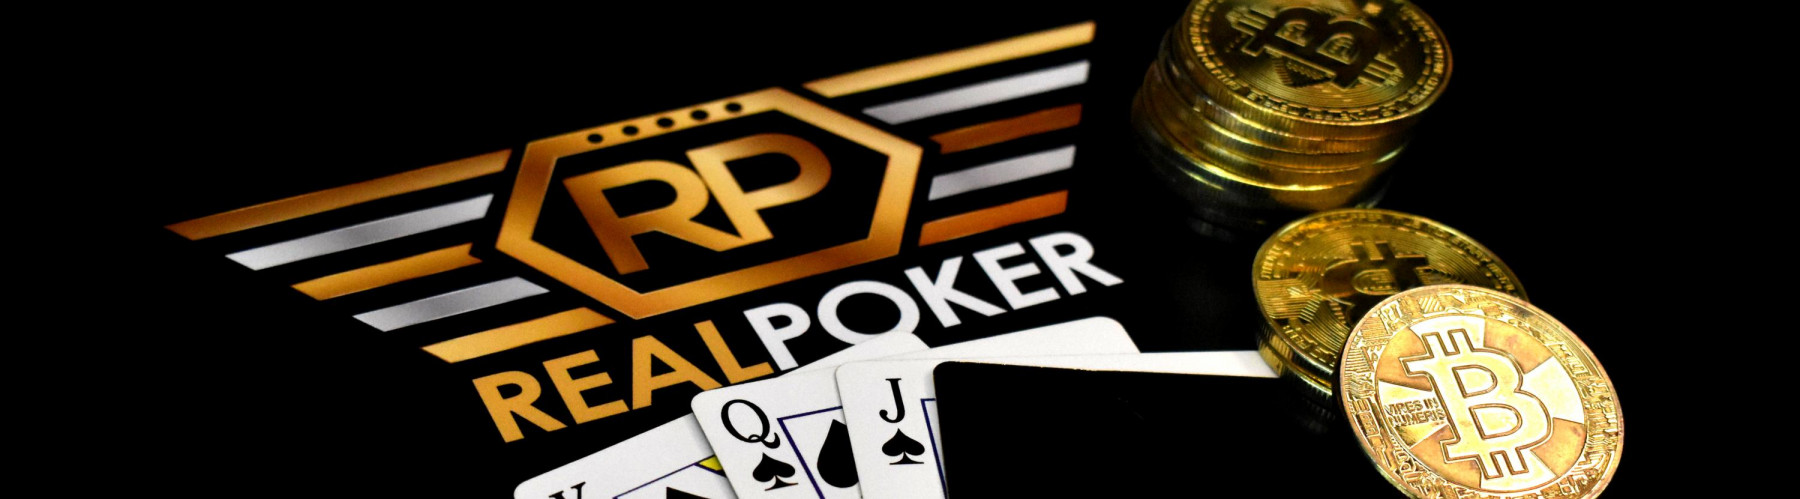 The Most Commonly Used Poker Terms And Their Meanings